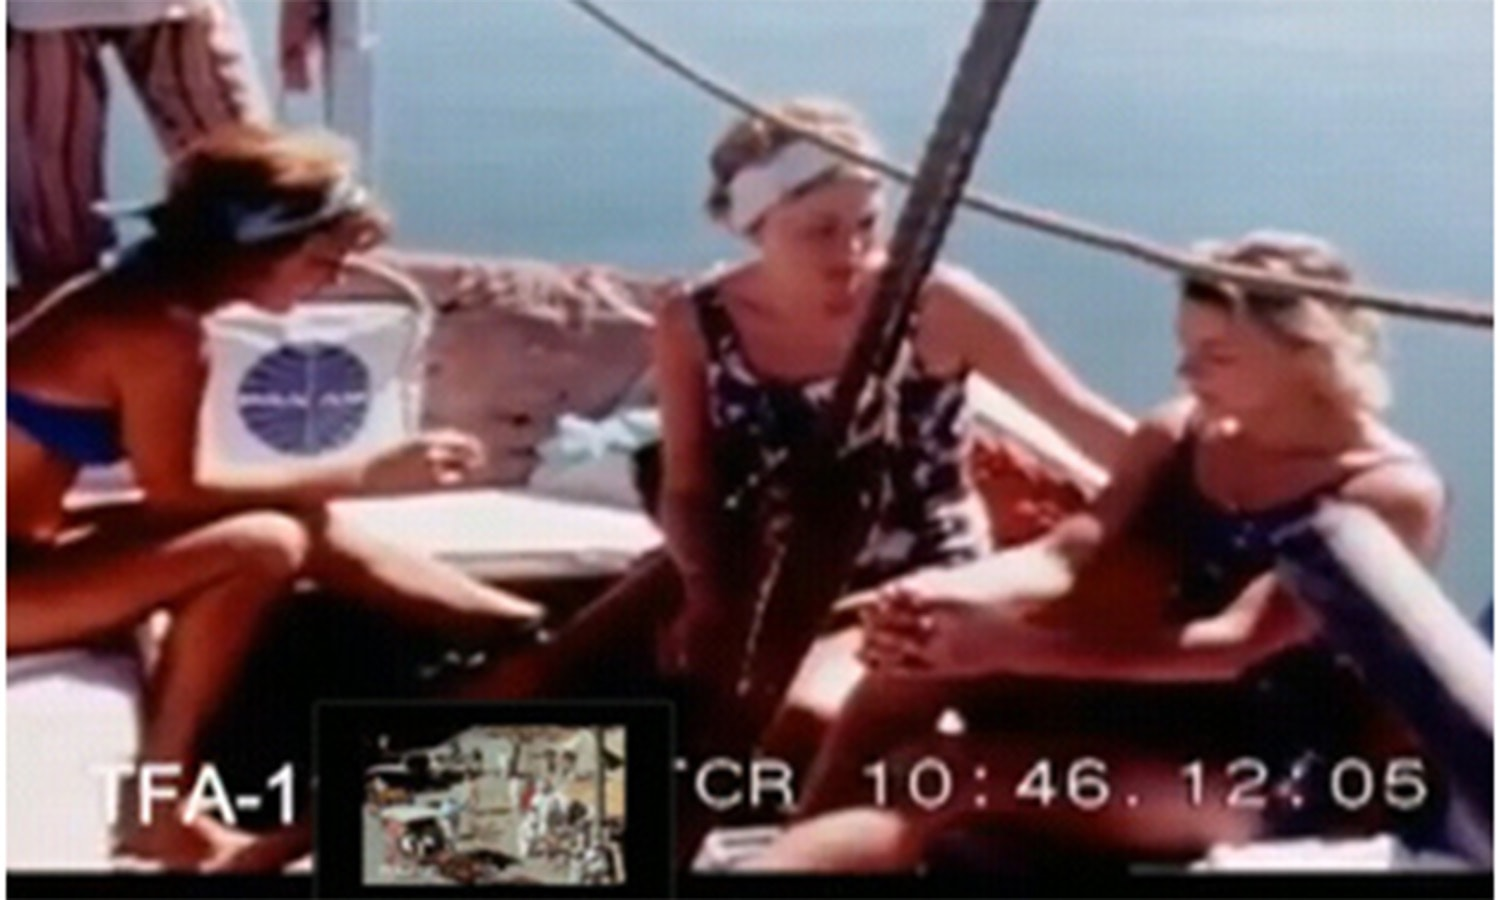 Tourists enjoy a boat ride in Keamari in the late 1960s.